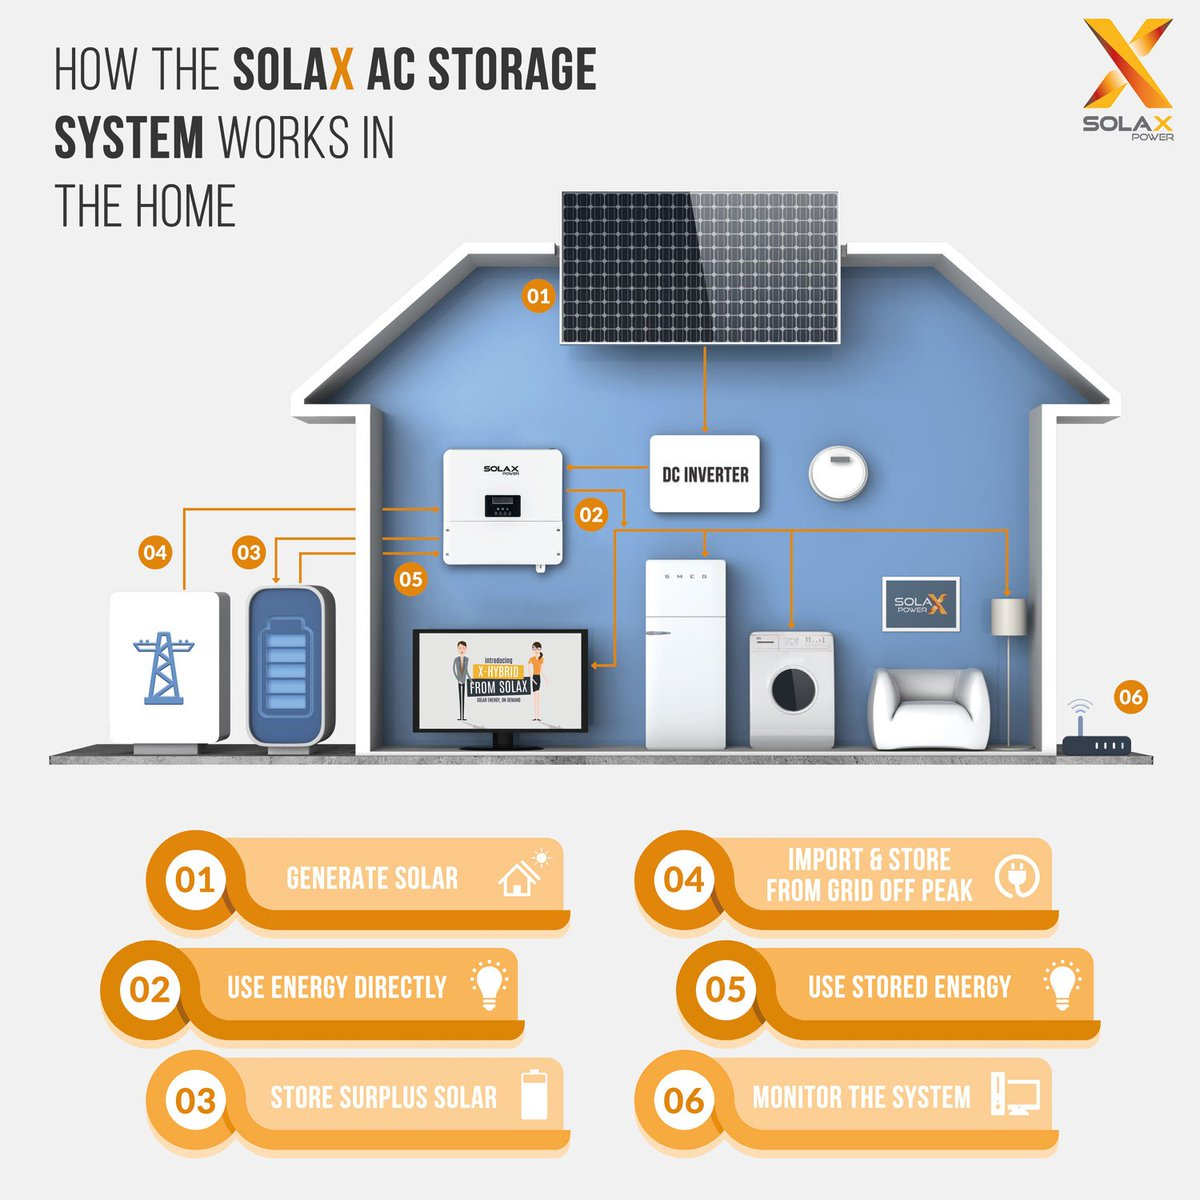 Nearest Battery Store >> Solax Power On Twitter Incase You Were Not Aware We Have